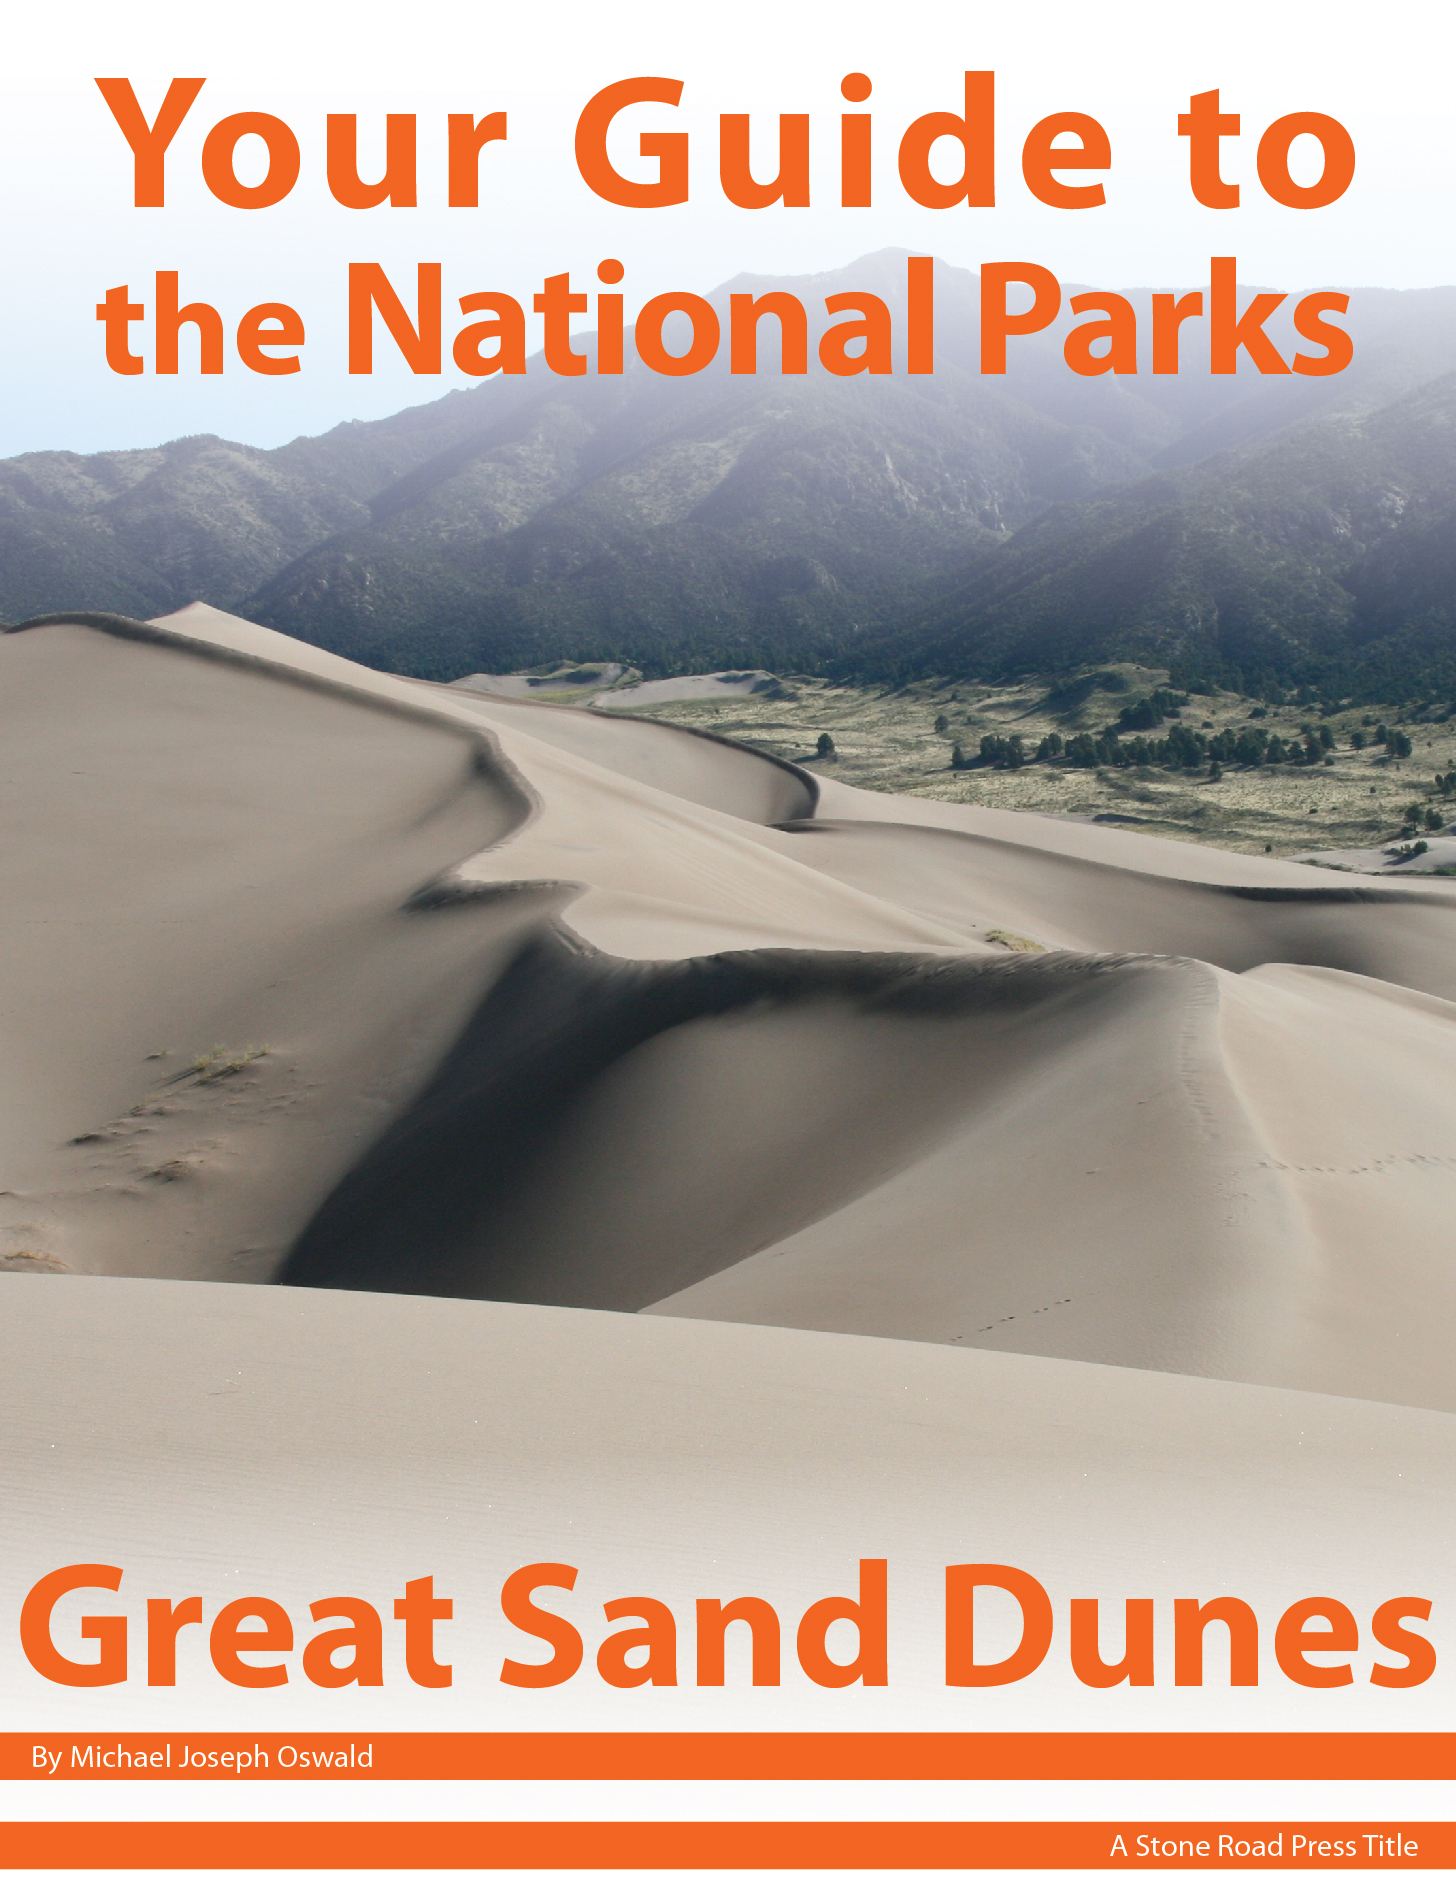 Your Guide to Great Sand Dunes National Park